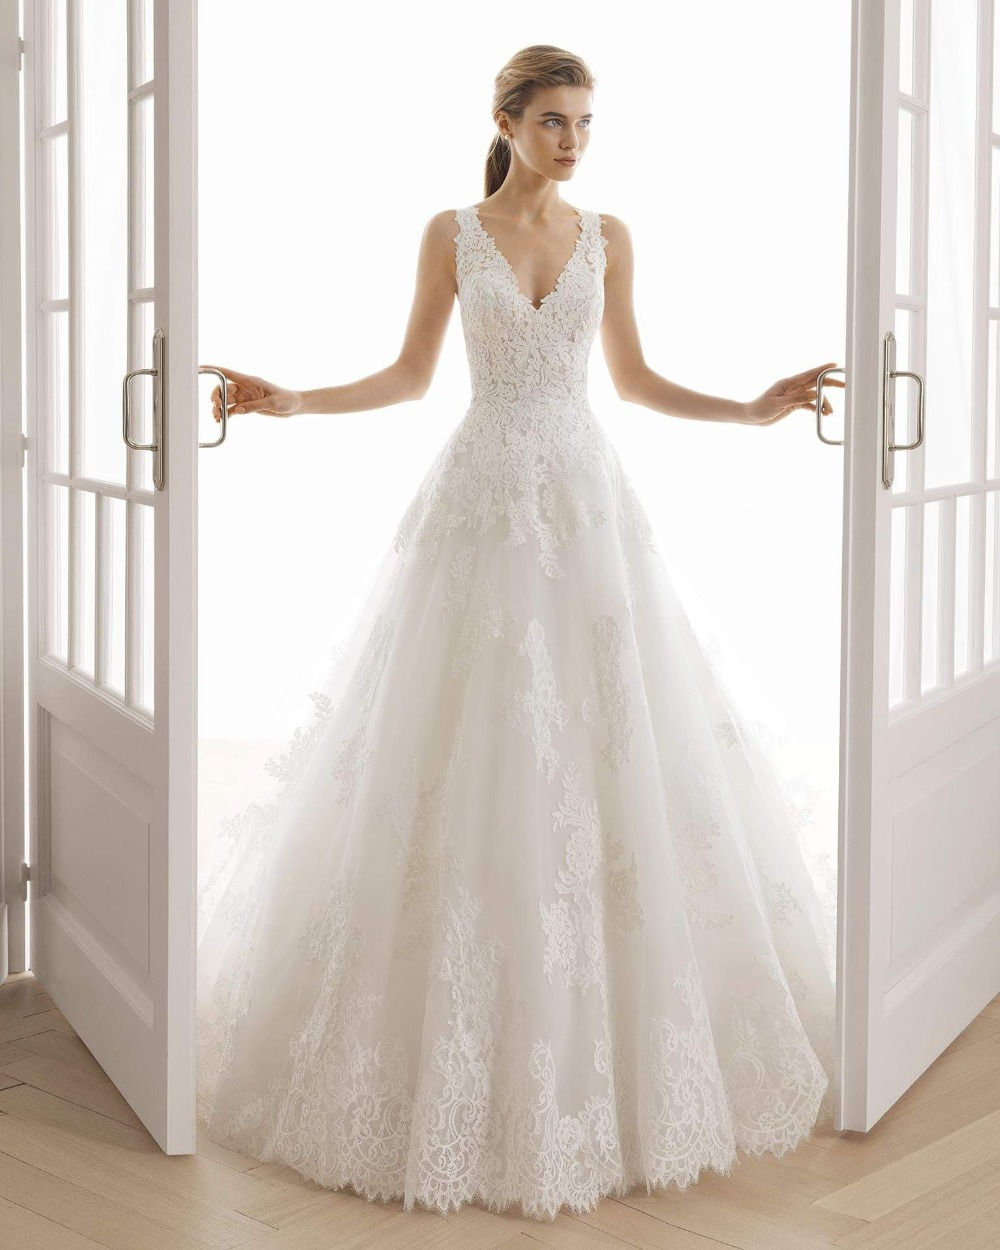 Free Shipping 2019 New Design Hot Sale Formal Gown Sweetheart Ball Gown Lace Appliques White Custom Bridal Long Wedding Dresses